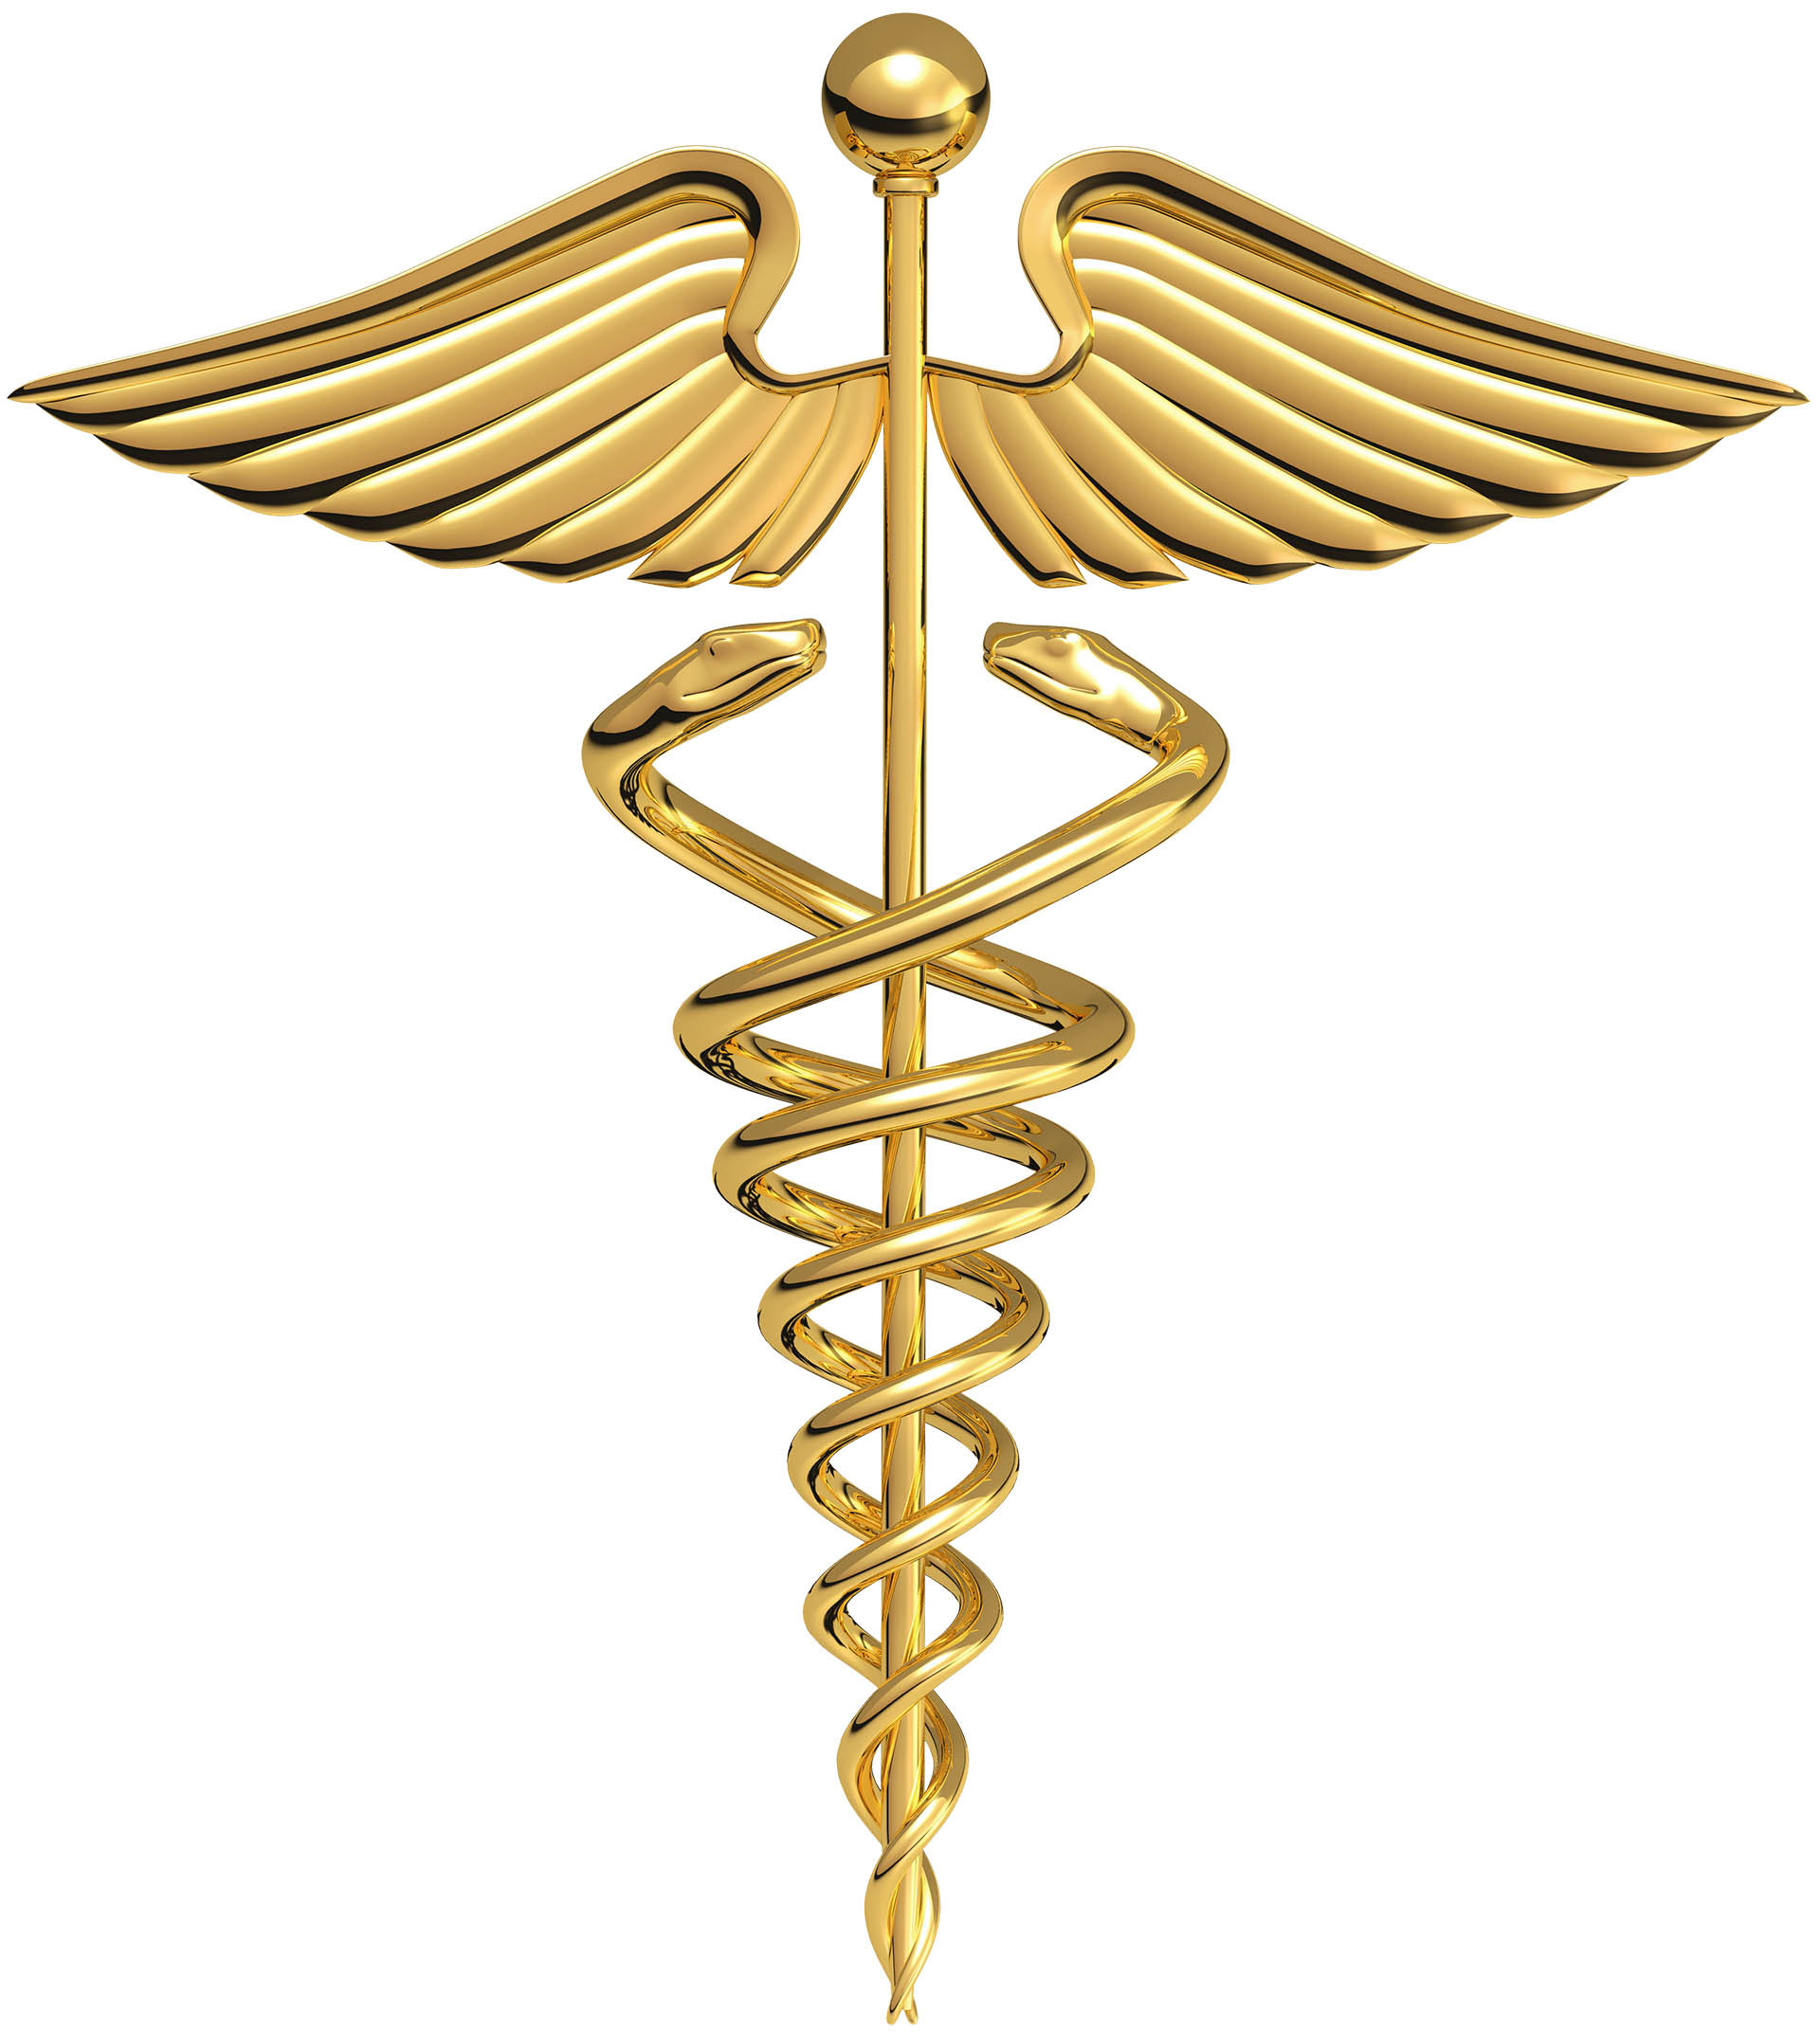 Caduceus - HEALTH - Messenger of the gods - DO NO HARM - FEAR NOT - BE NOT AFRAID - CAUSE NO PAIN - BE AS PAINLESS AS POSSIBLE - CAUSE NO FEAR - DO NOT BE SCARY - USE BIRTH CONTROL - PERMIT DIVORCE - DO NOT PUNISH - DO NOT MAKE THREATS - DO NOT BE COERCIVE - BE PERMISSIVE - BE TOLERANT - FREE UNIVERSAL HEALTH CARE - FREE UNIVERSAL EDUCATION